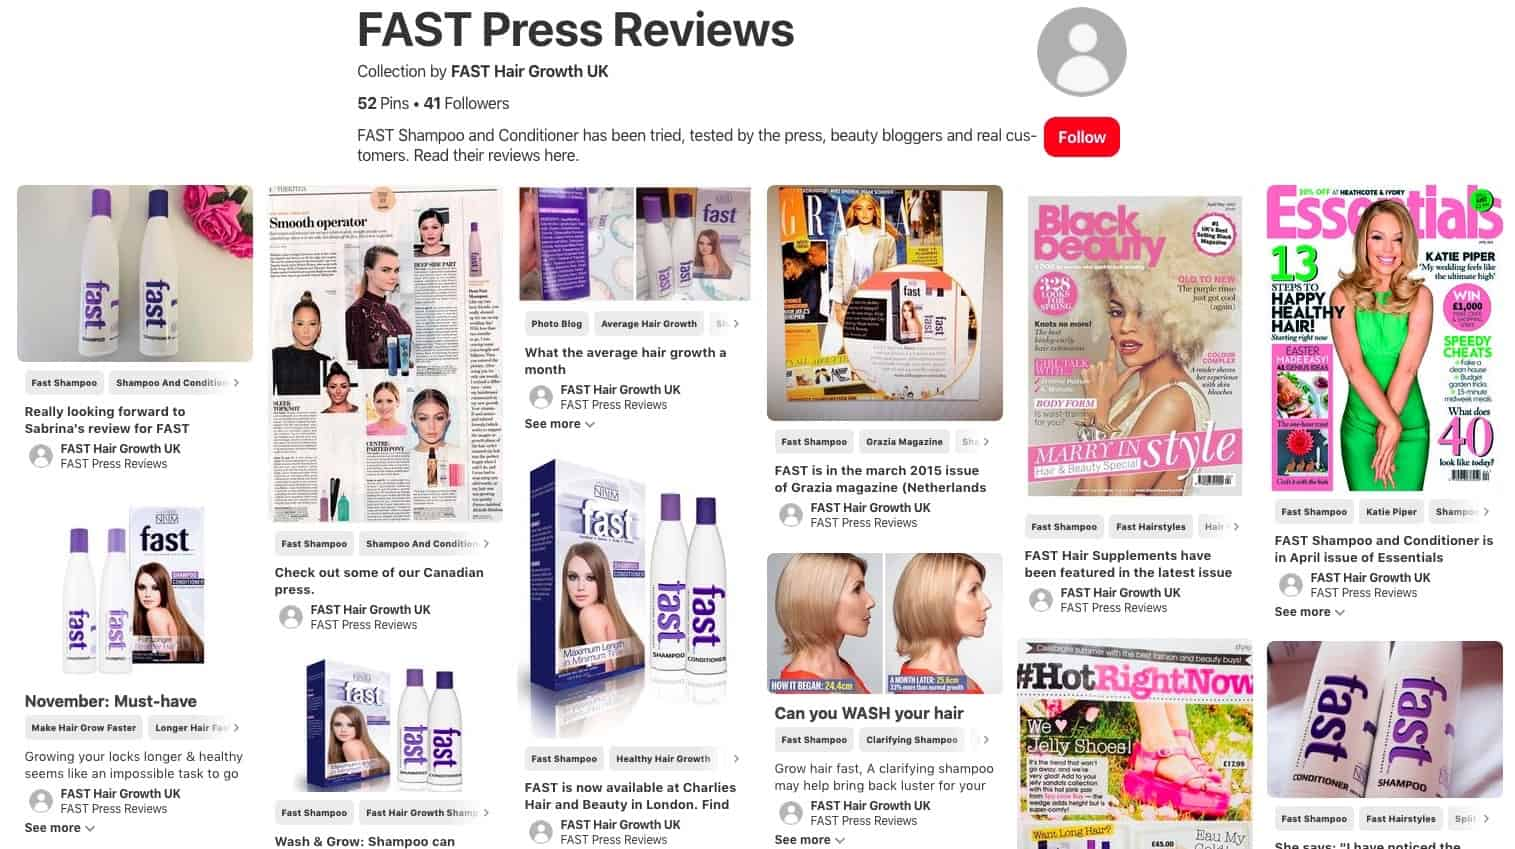 FAST Hair Growth reviews on Pinterest